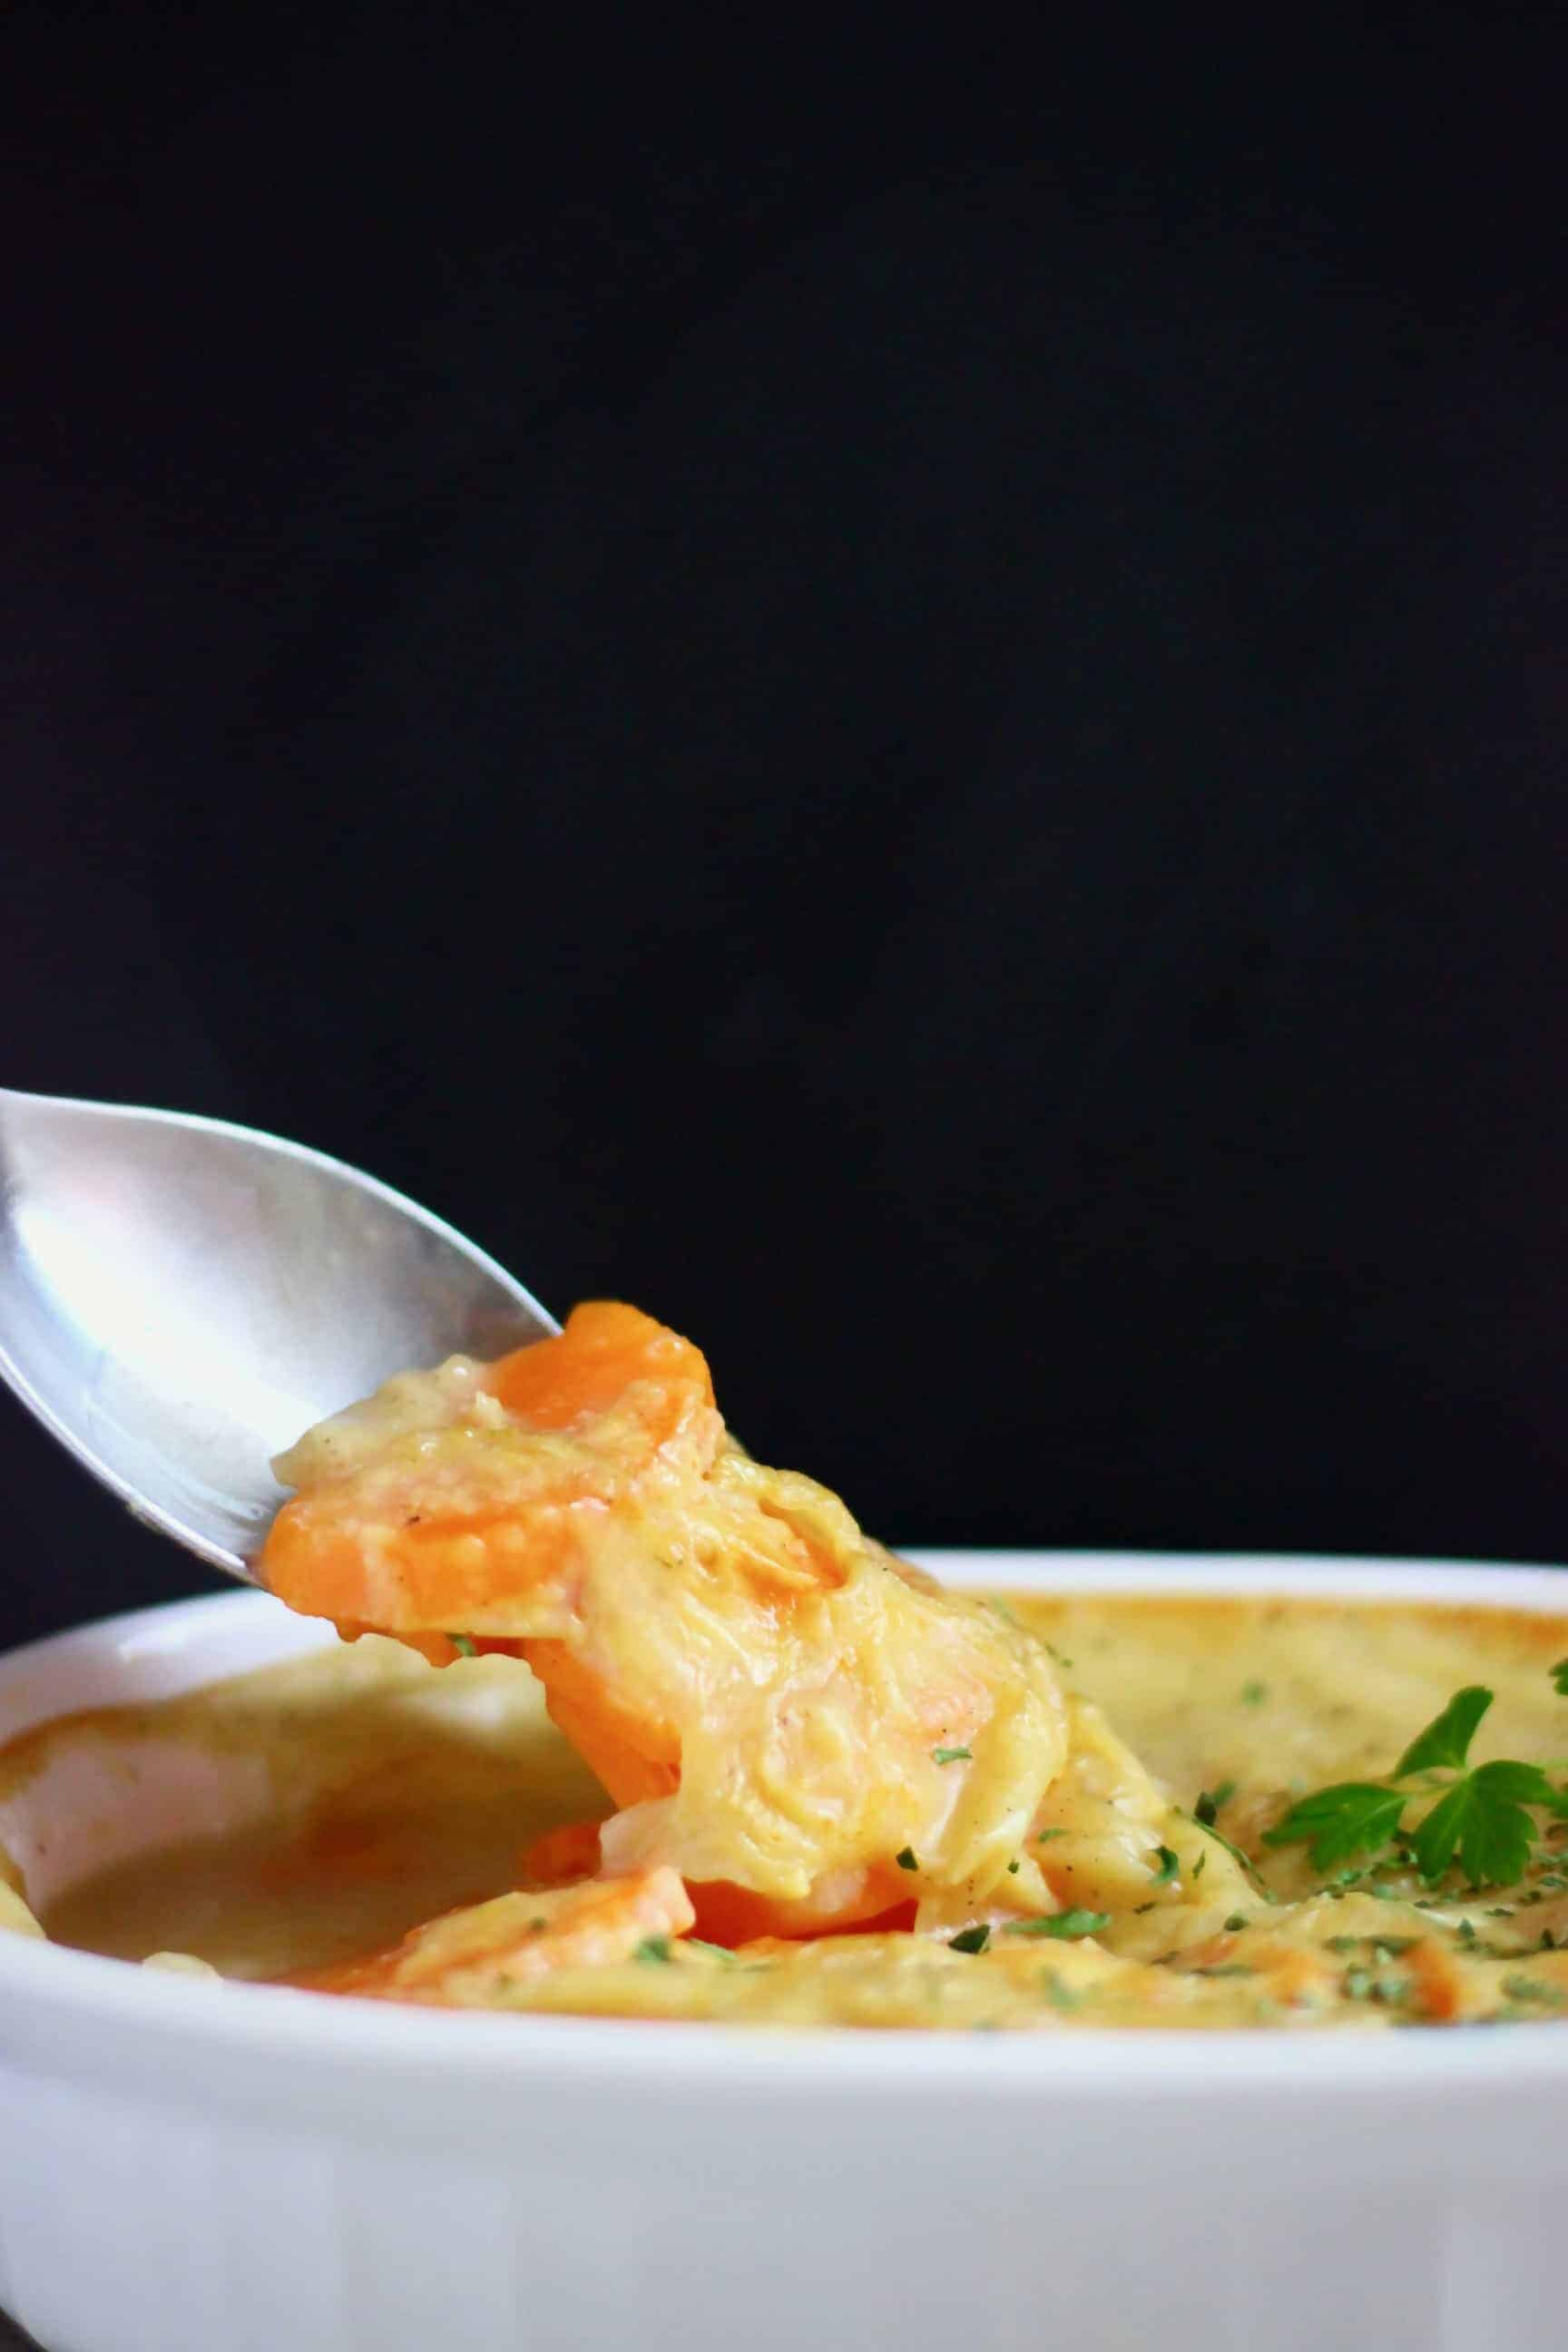 Vegan scalloped sweet potatoes in a white pie dish with a silver spoon lifting up a mouthful